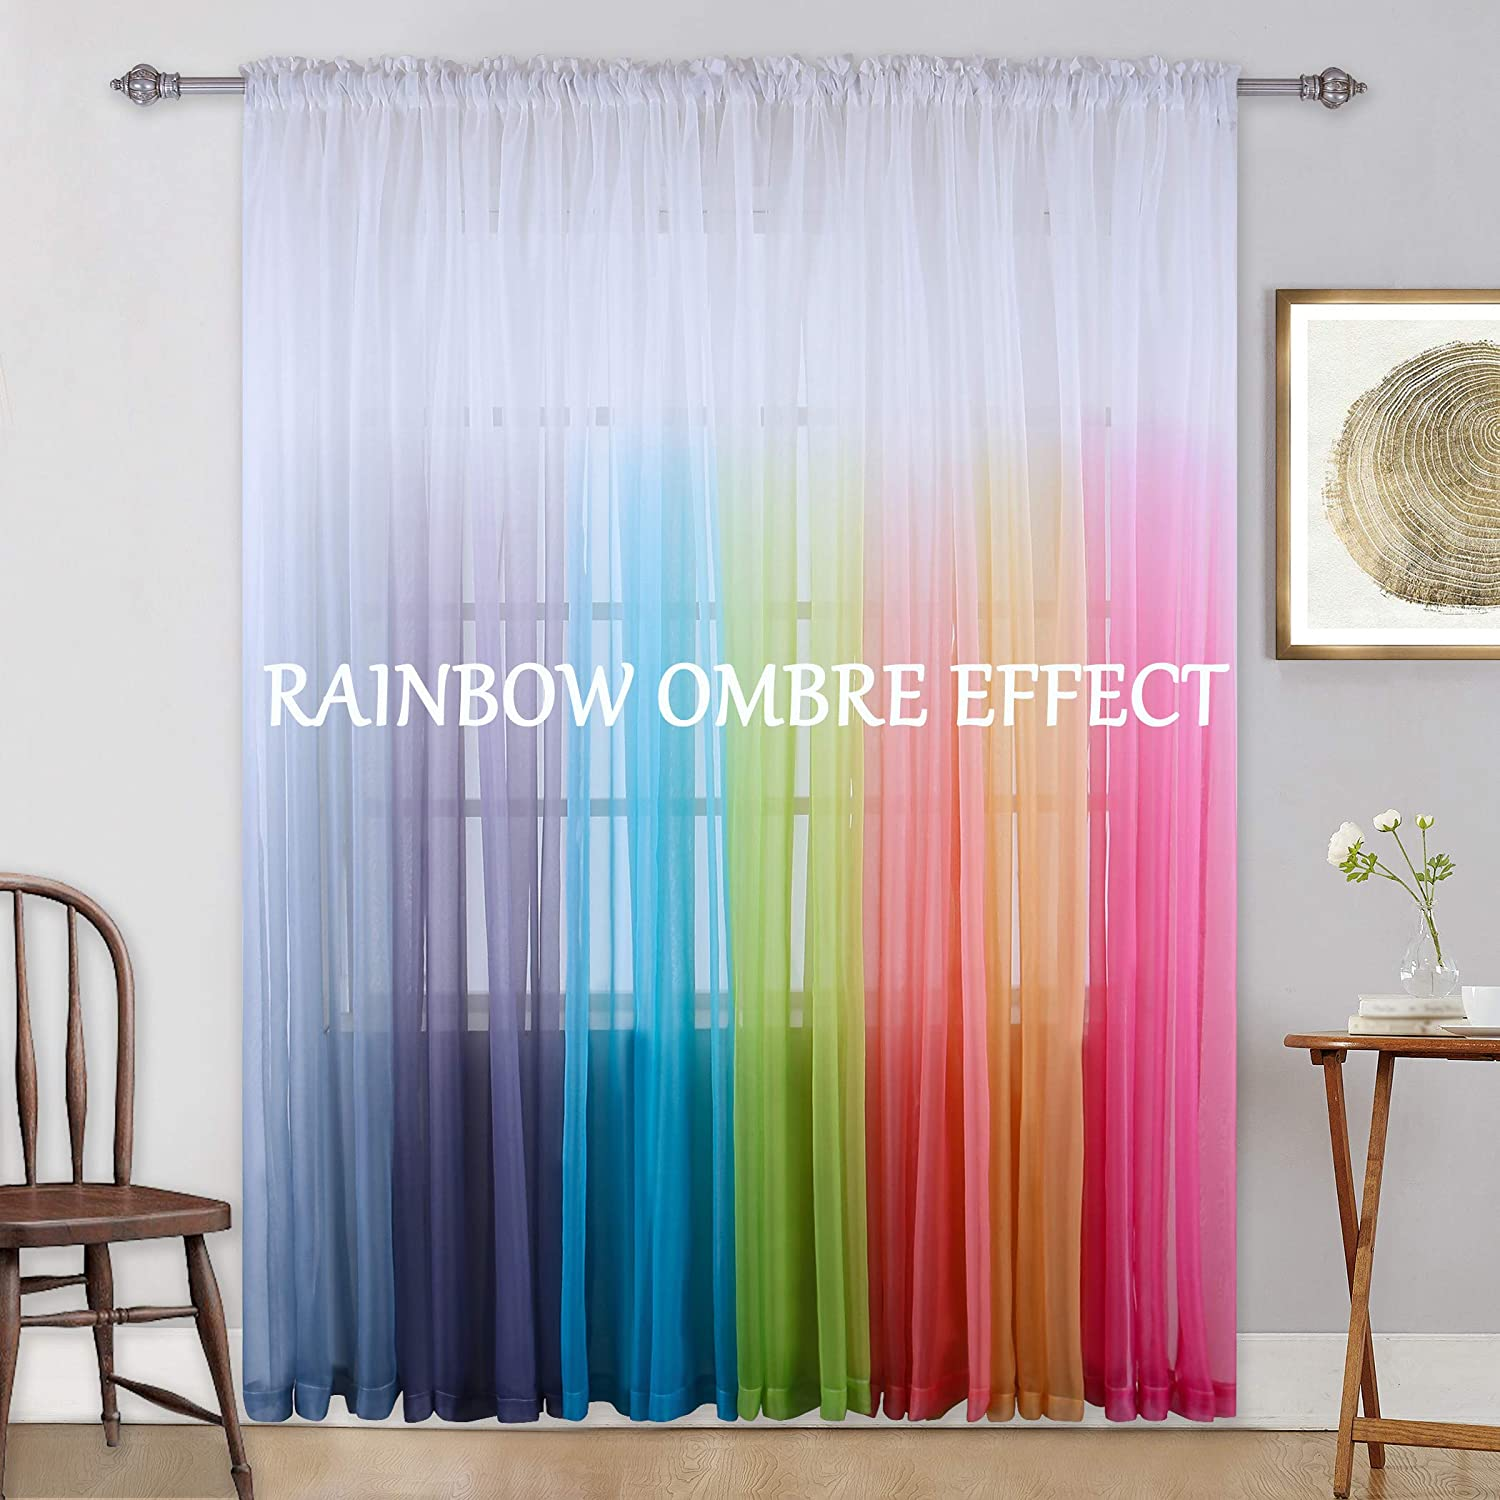 KEQIAOSUOCAI Gradient Curtains Light Purple Ombre Semi Sheer Curtain Girls  Bedroom Curtain Panel Drapes Voiles for Windows/Living Room/Kids ...